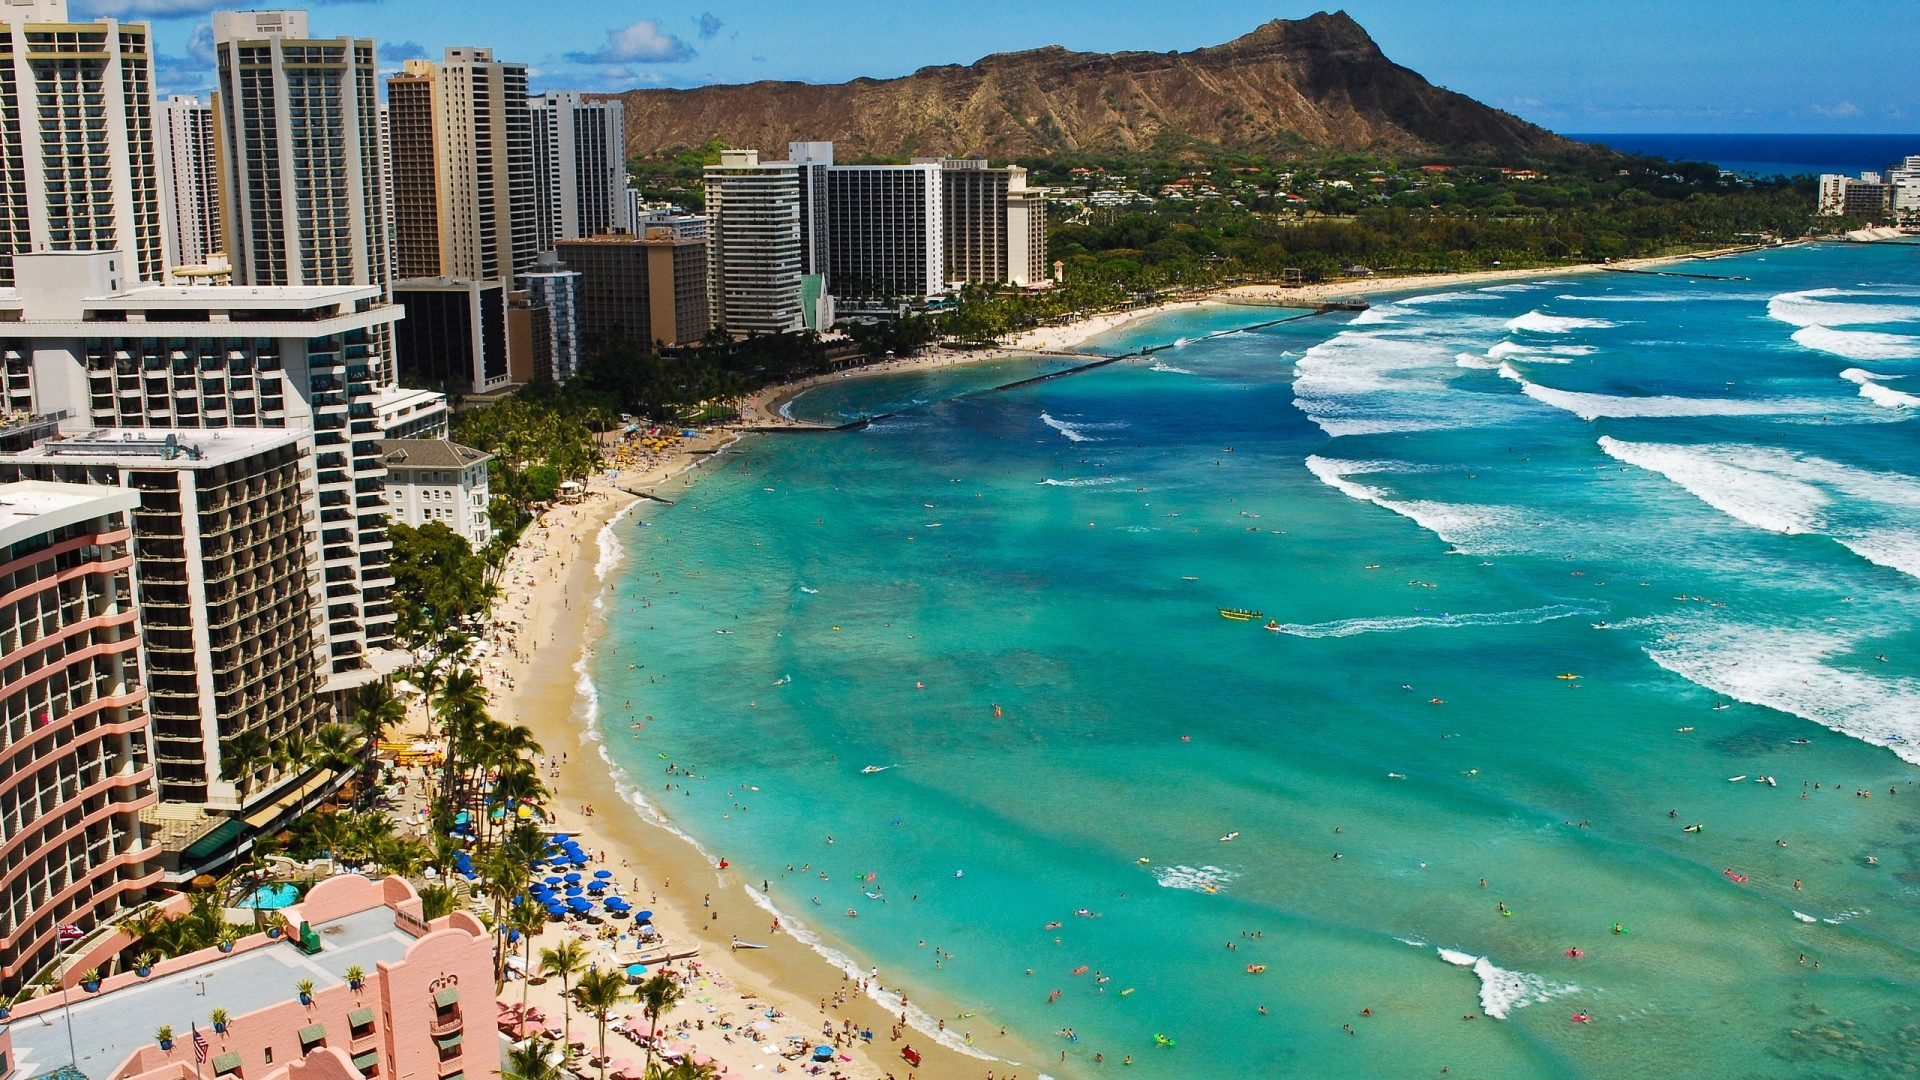 1920x1080 hawaii wallpaper 1 hawaii wallpaper 2 ...